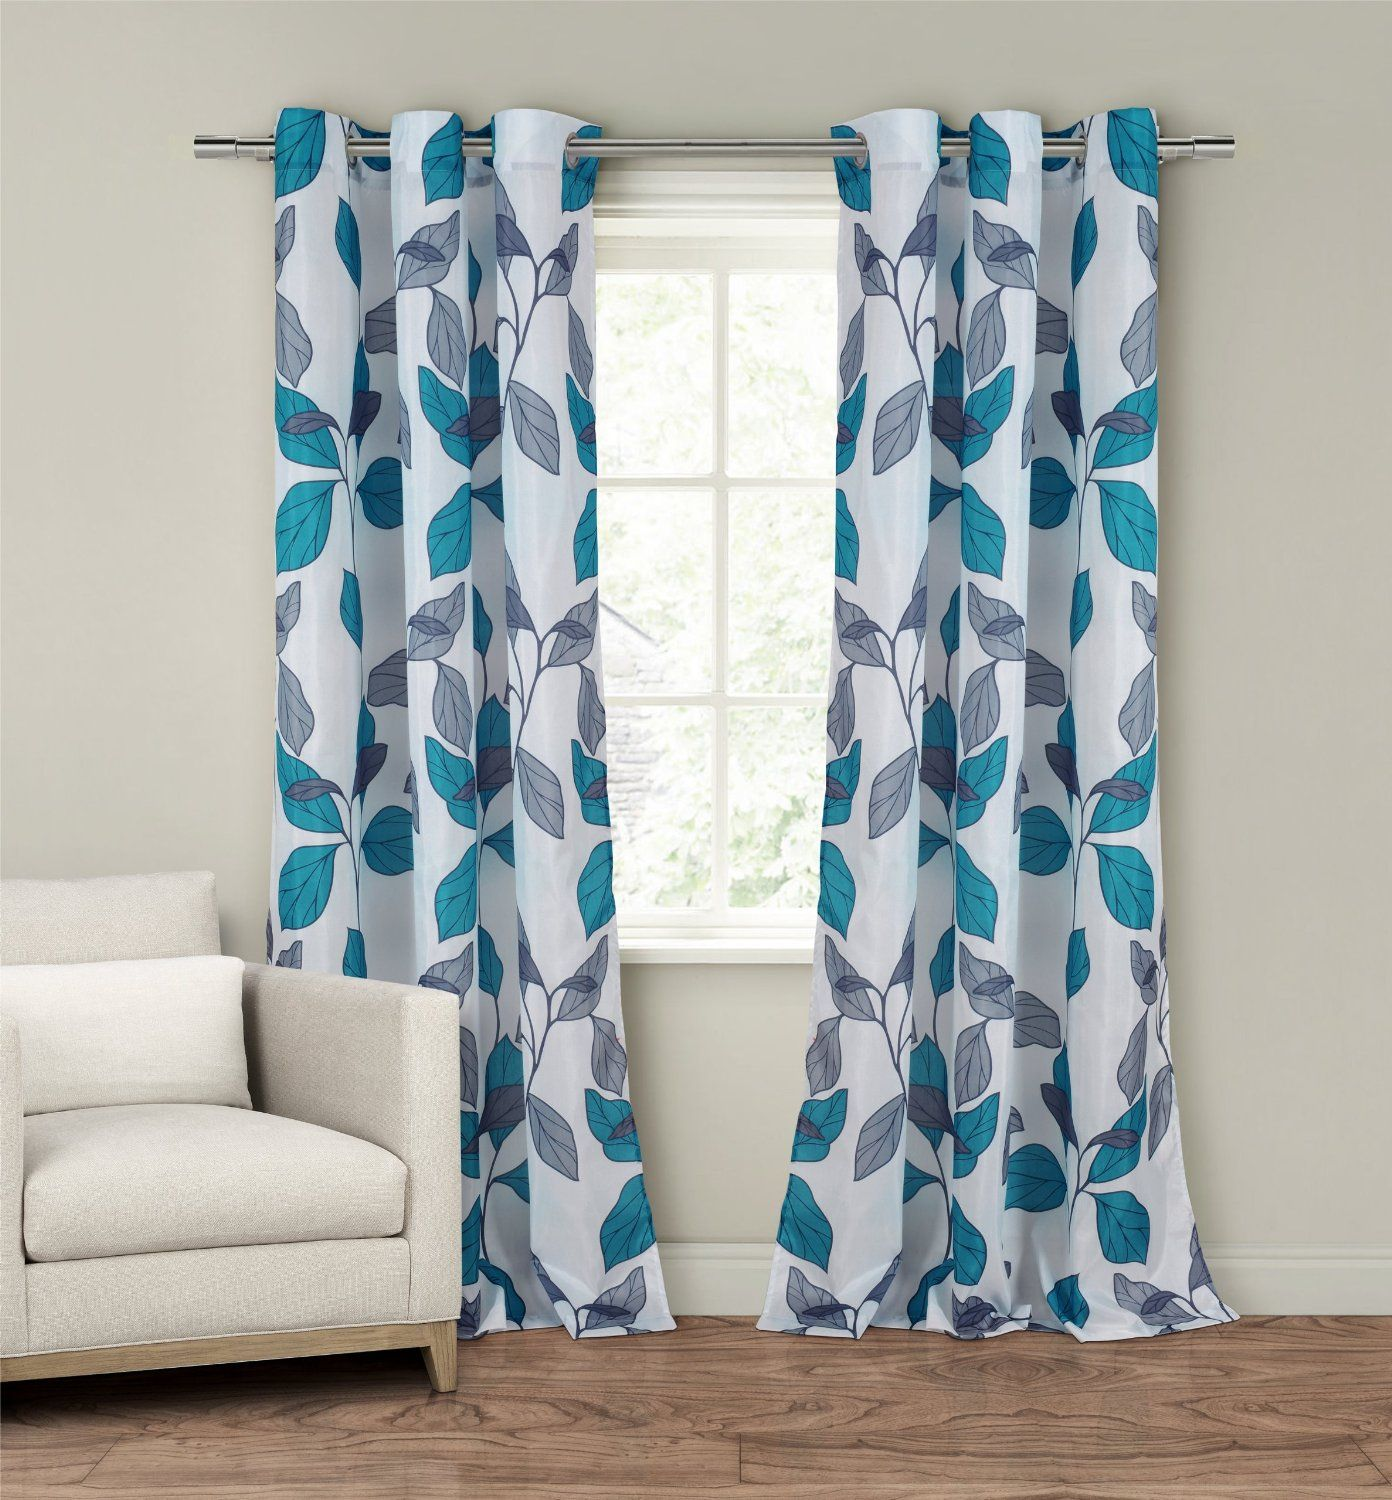 New set 2 window curtains panels drapes pair 84 faux silk gray grey blue floral in home garden window treatments hardware curtains drapes valances